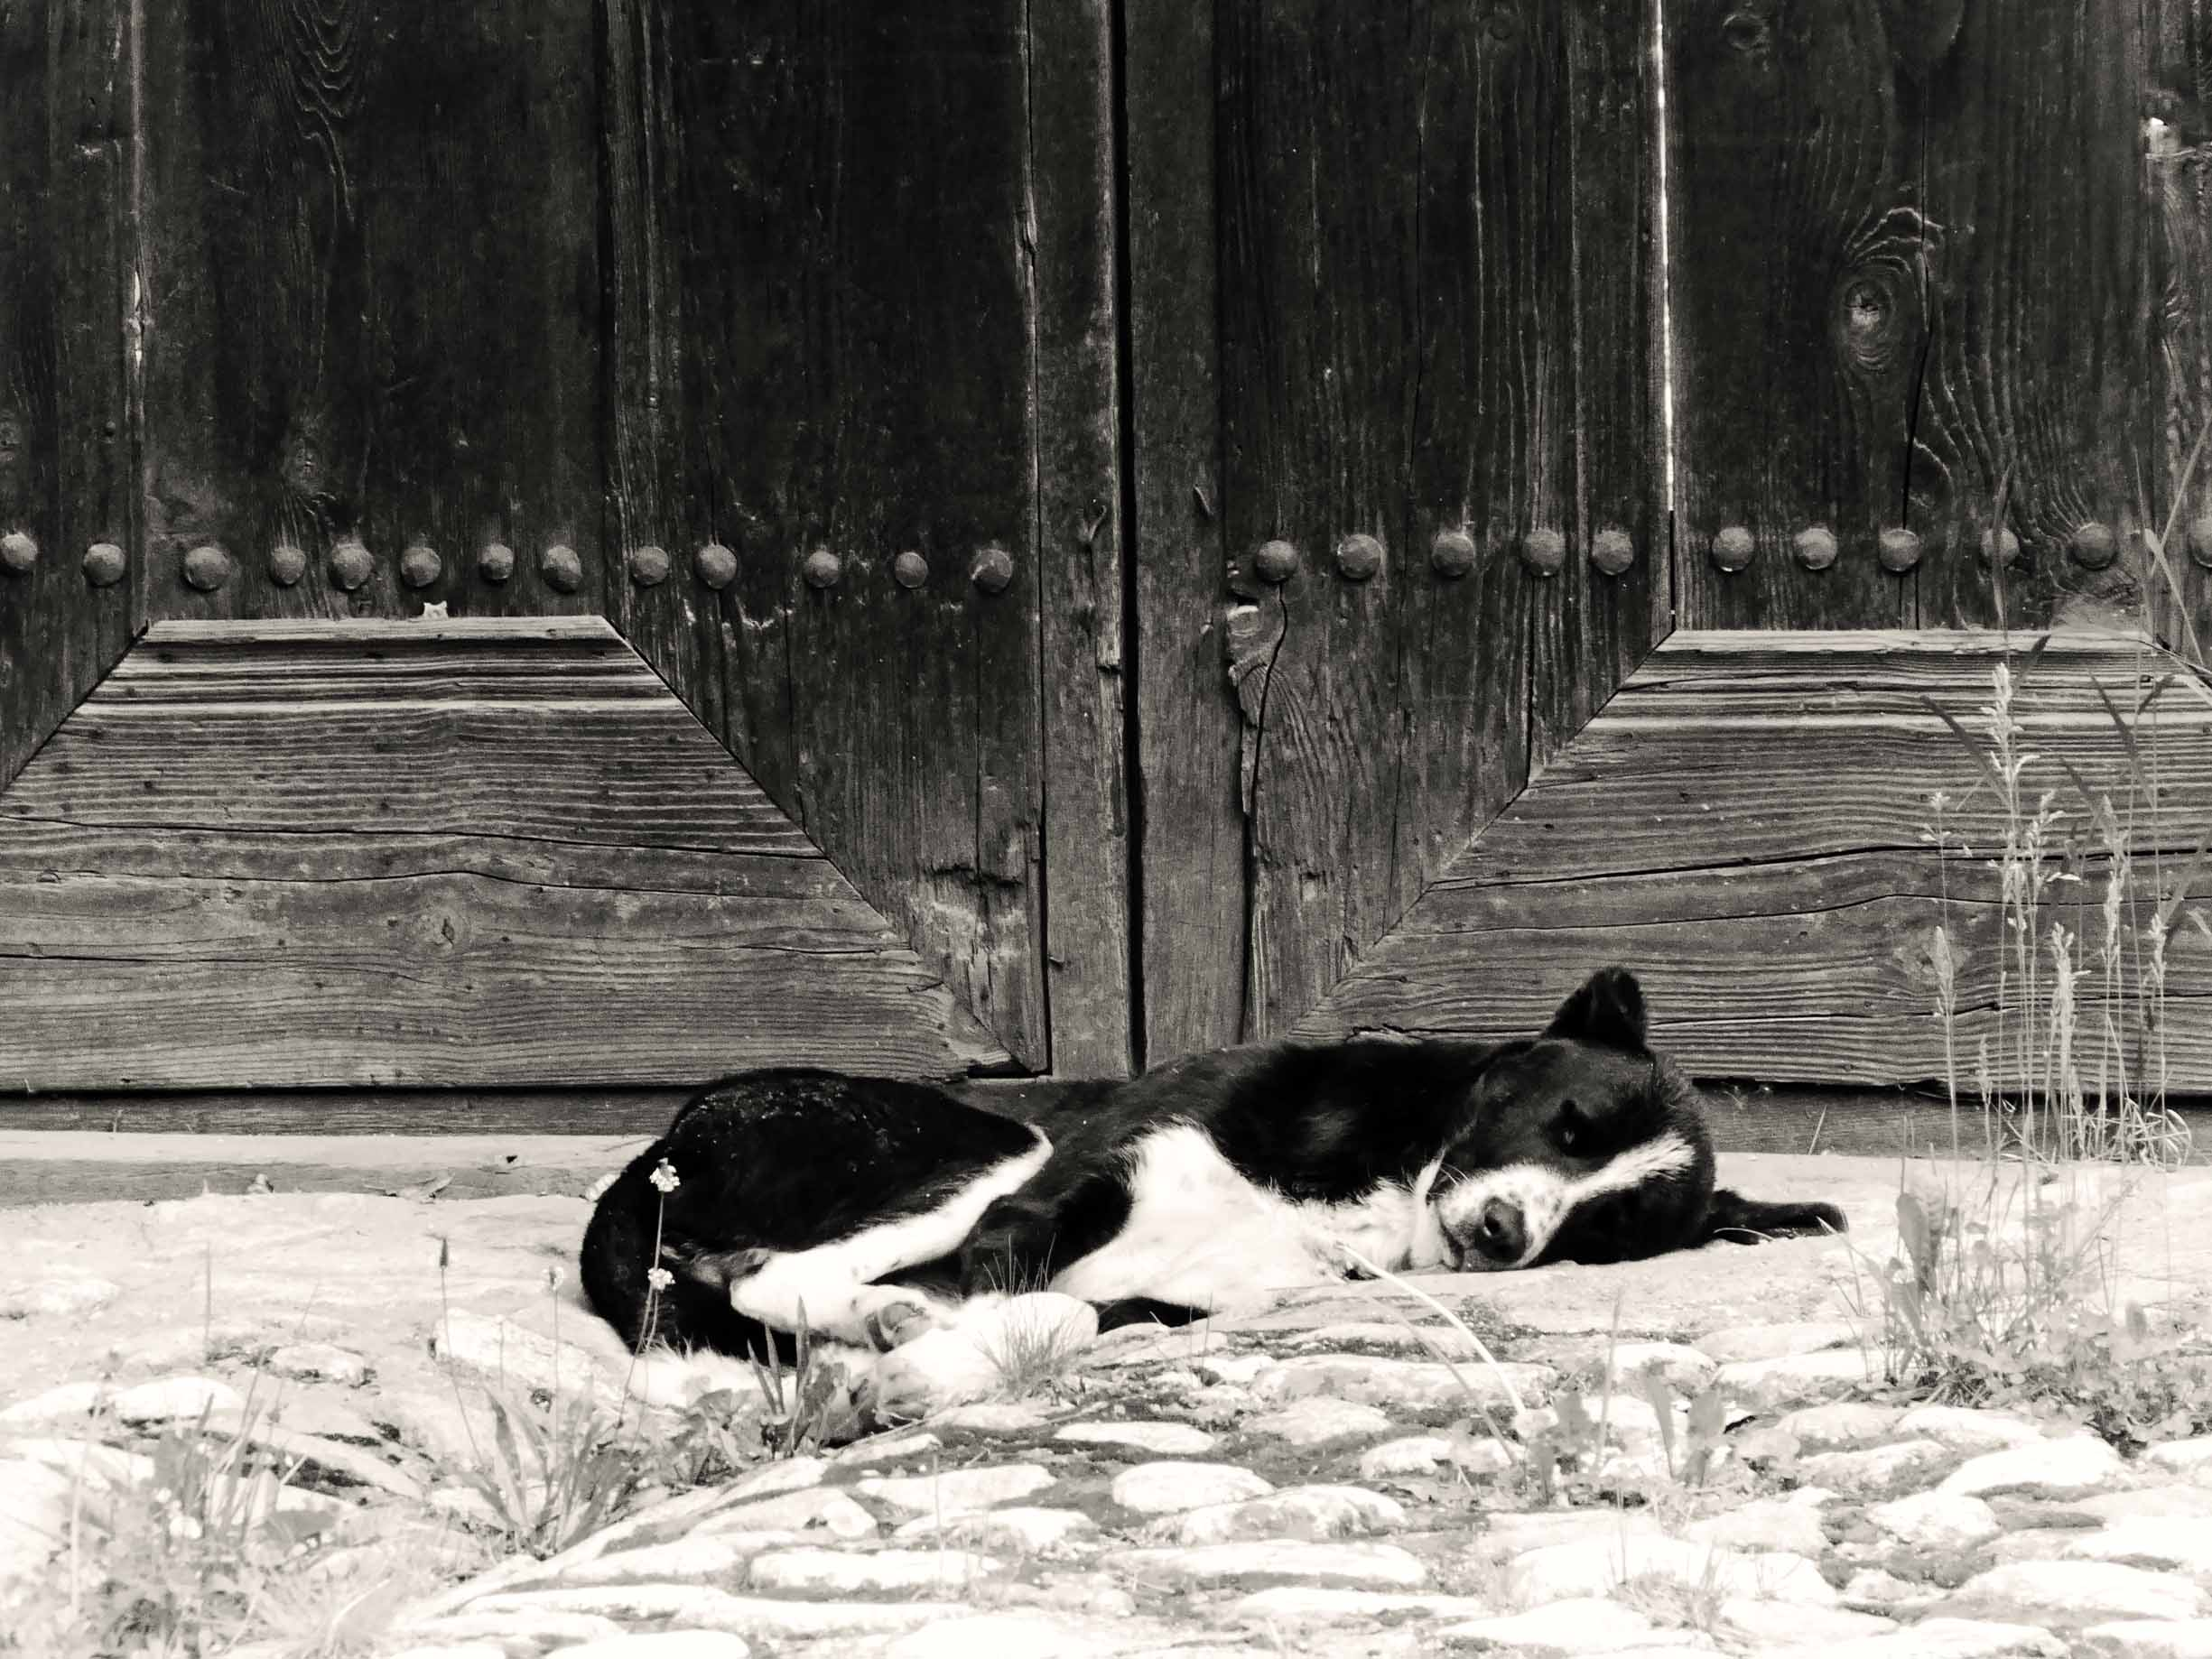 Black and white dog lying in front of wooden gates